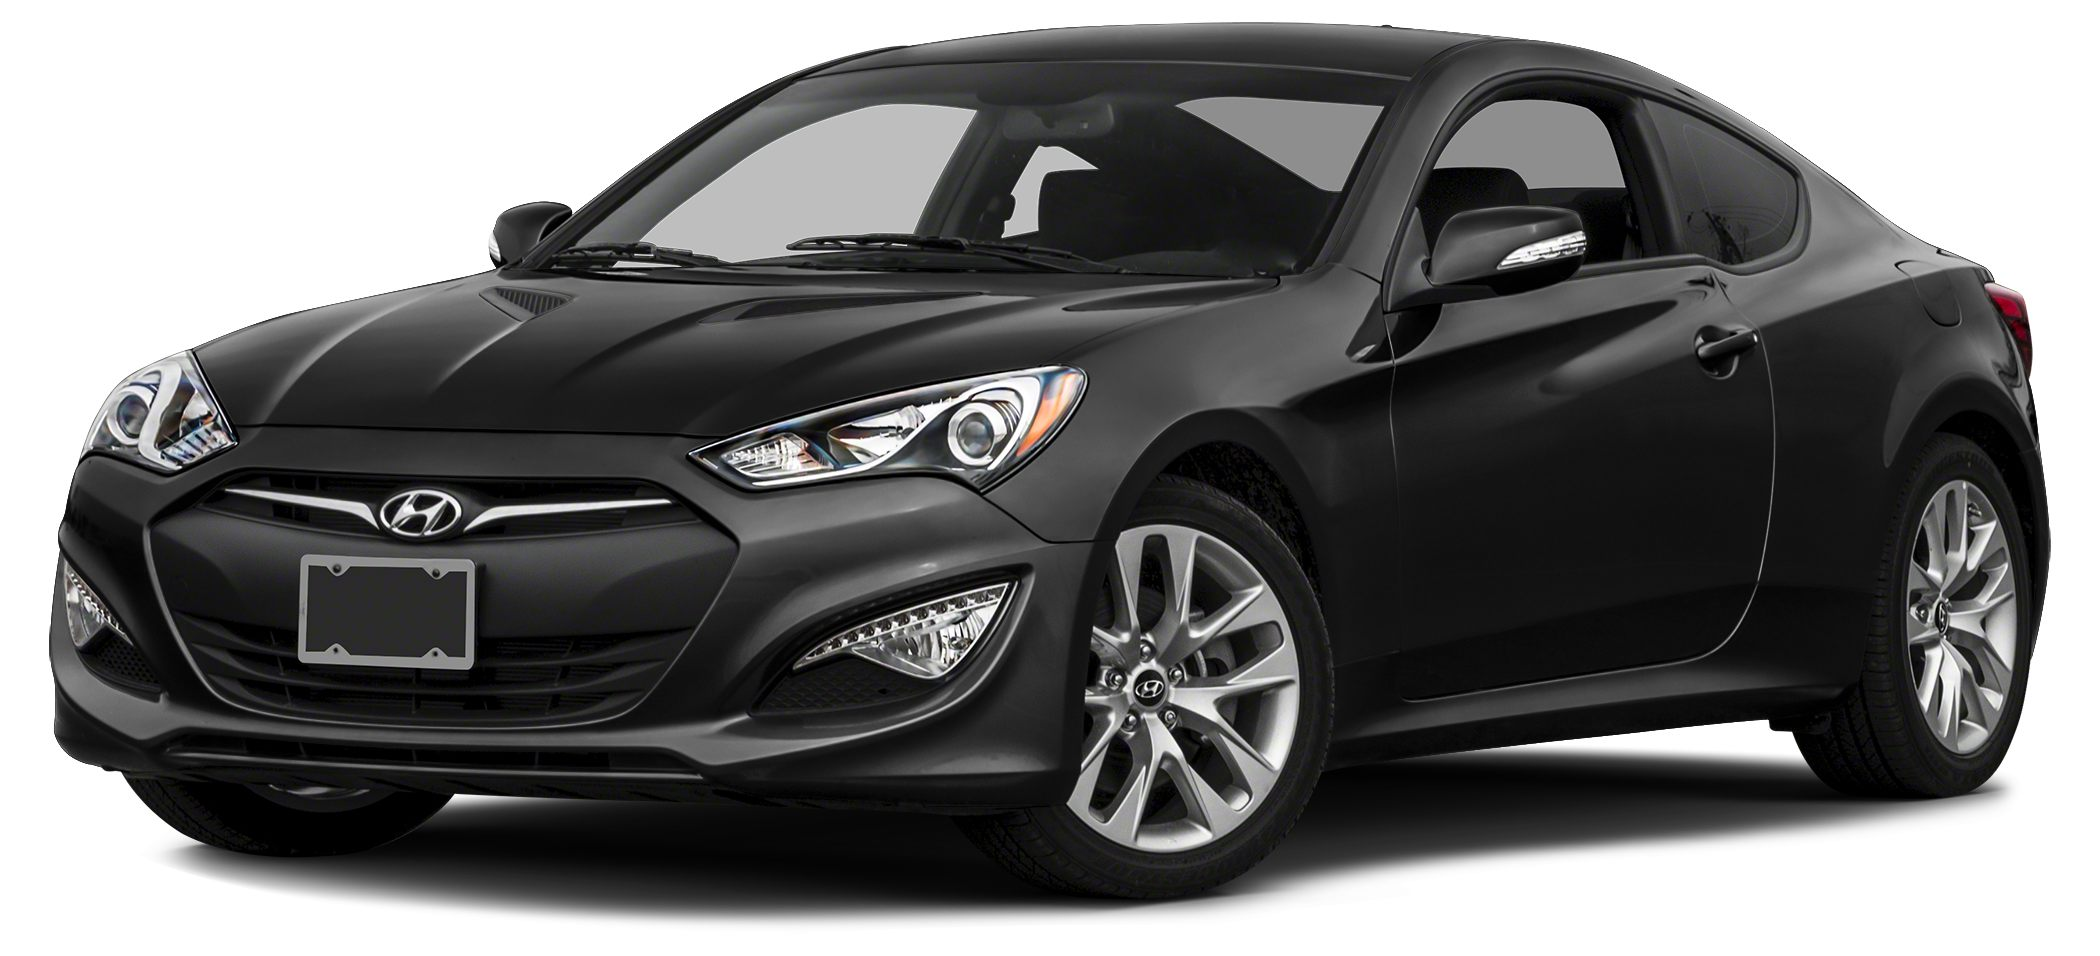 2015 Hyundai Genesis Coupe 38  WHEN IT COMES TO EXCELLENCE IN USED CAR SALESYOU KNOWYOURE A